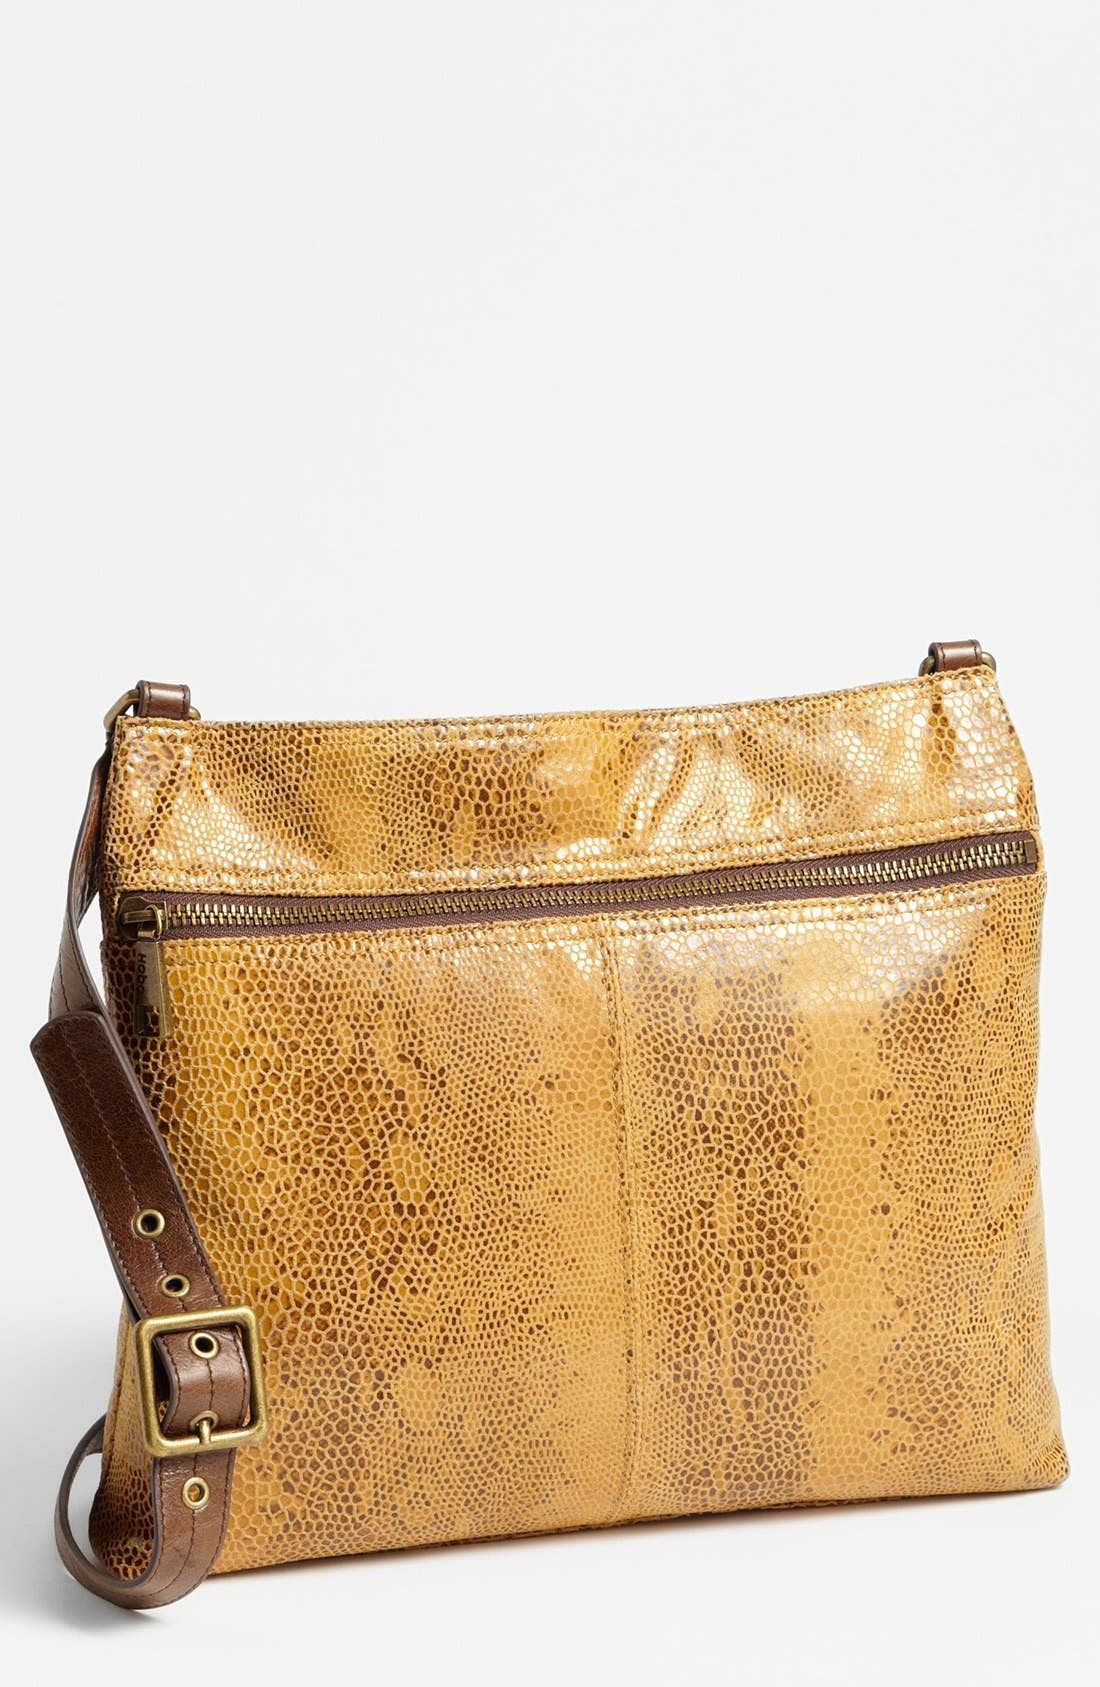 Main Image - Hobo 'Lorna' Leather Shoulder Bag